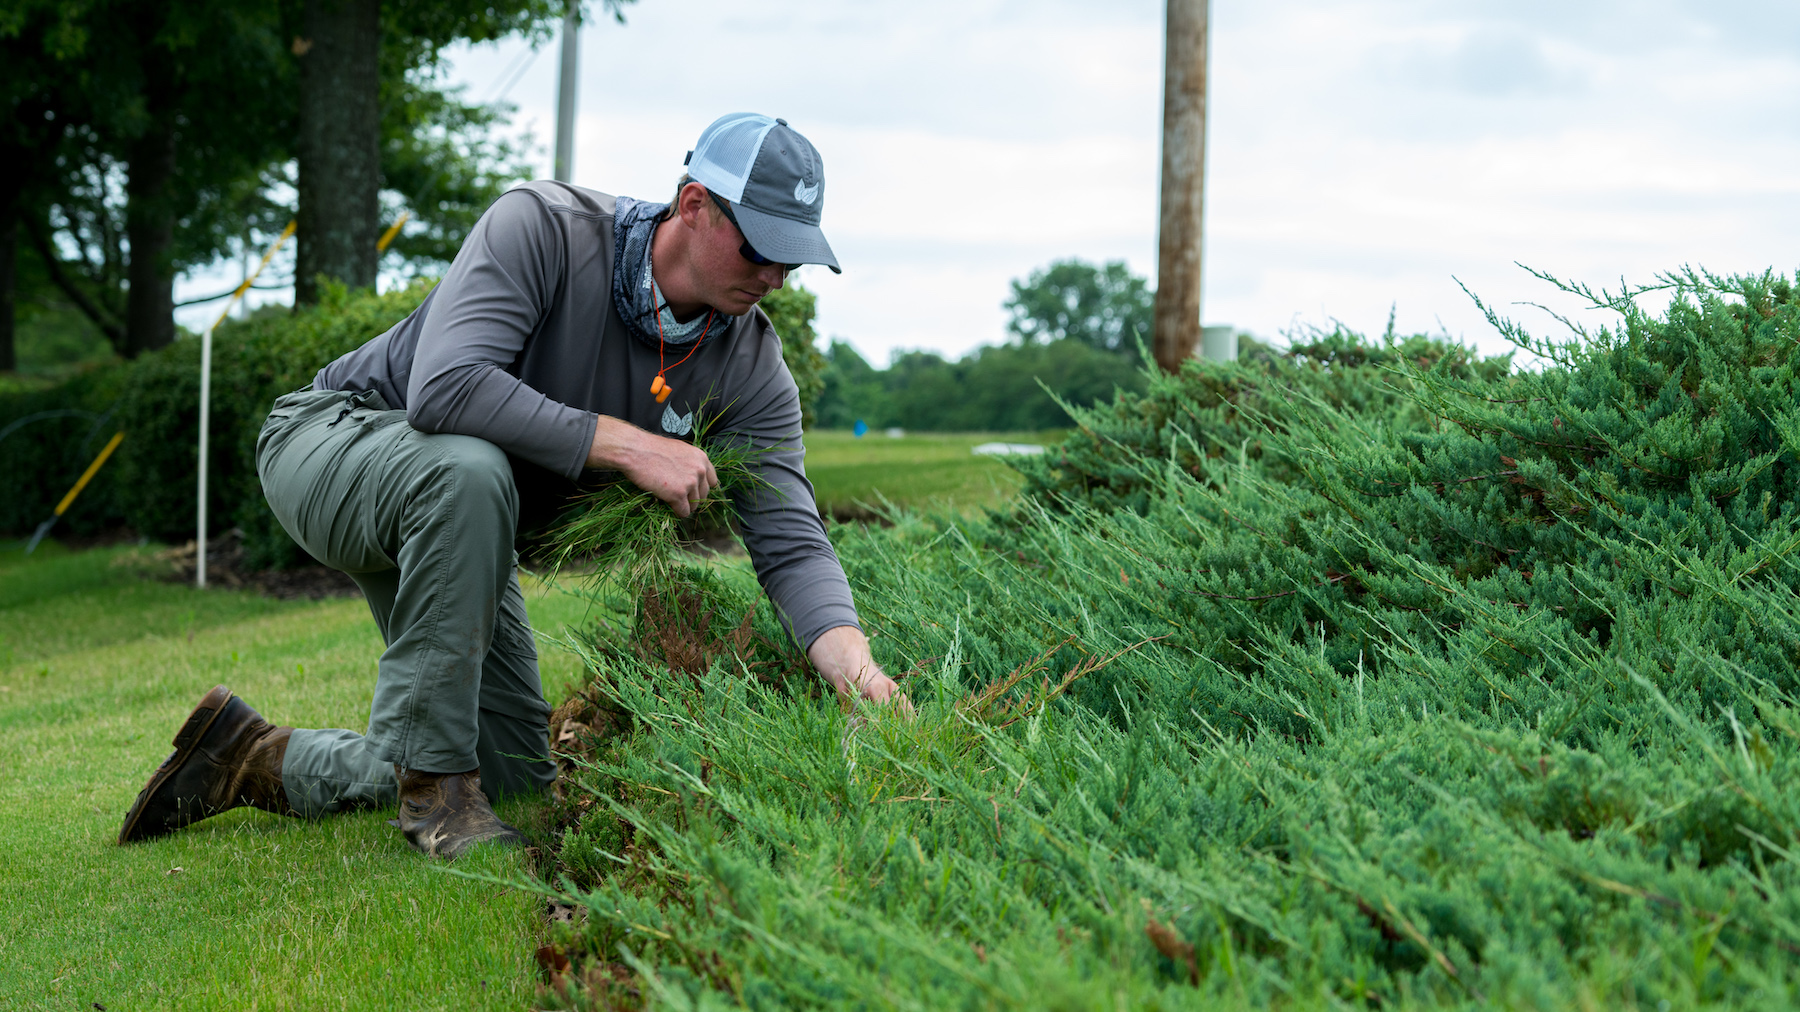 Commercial landscaping company technician